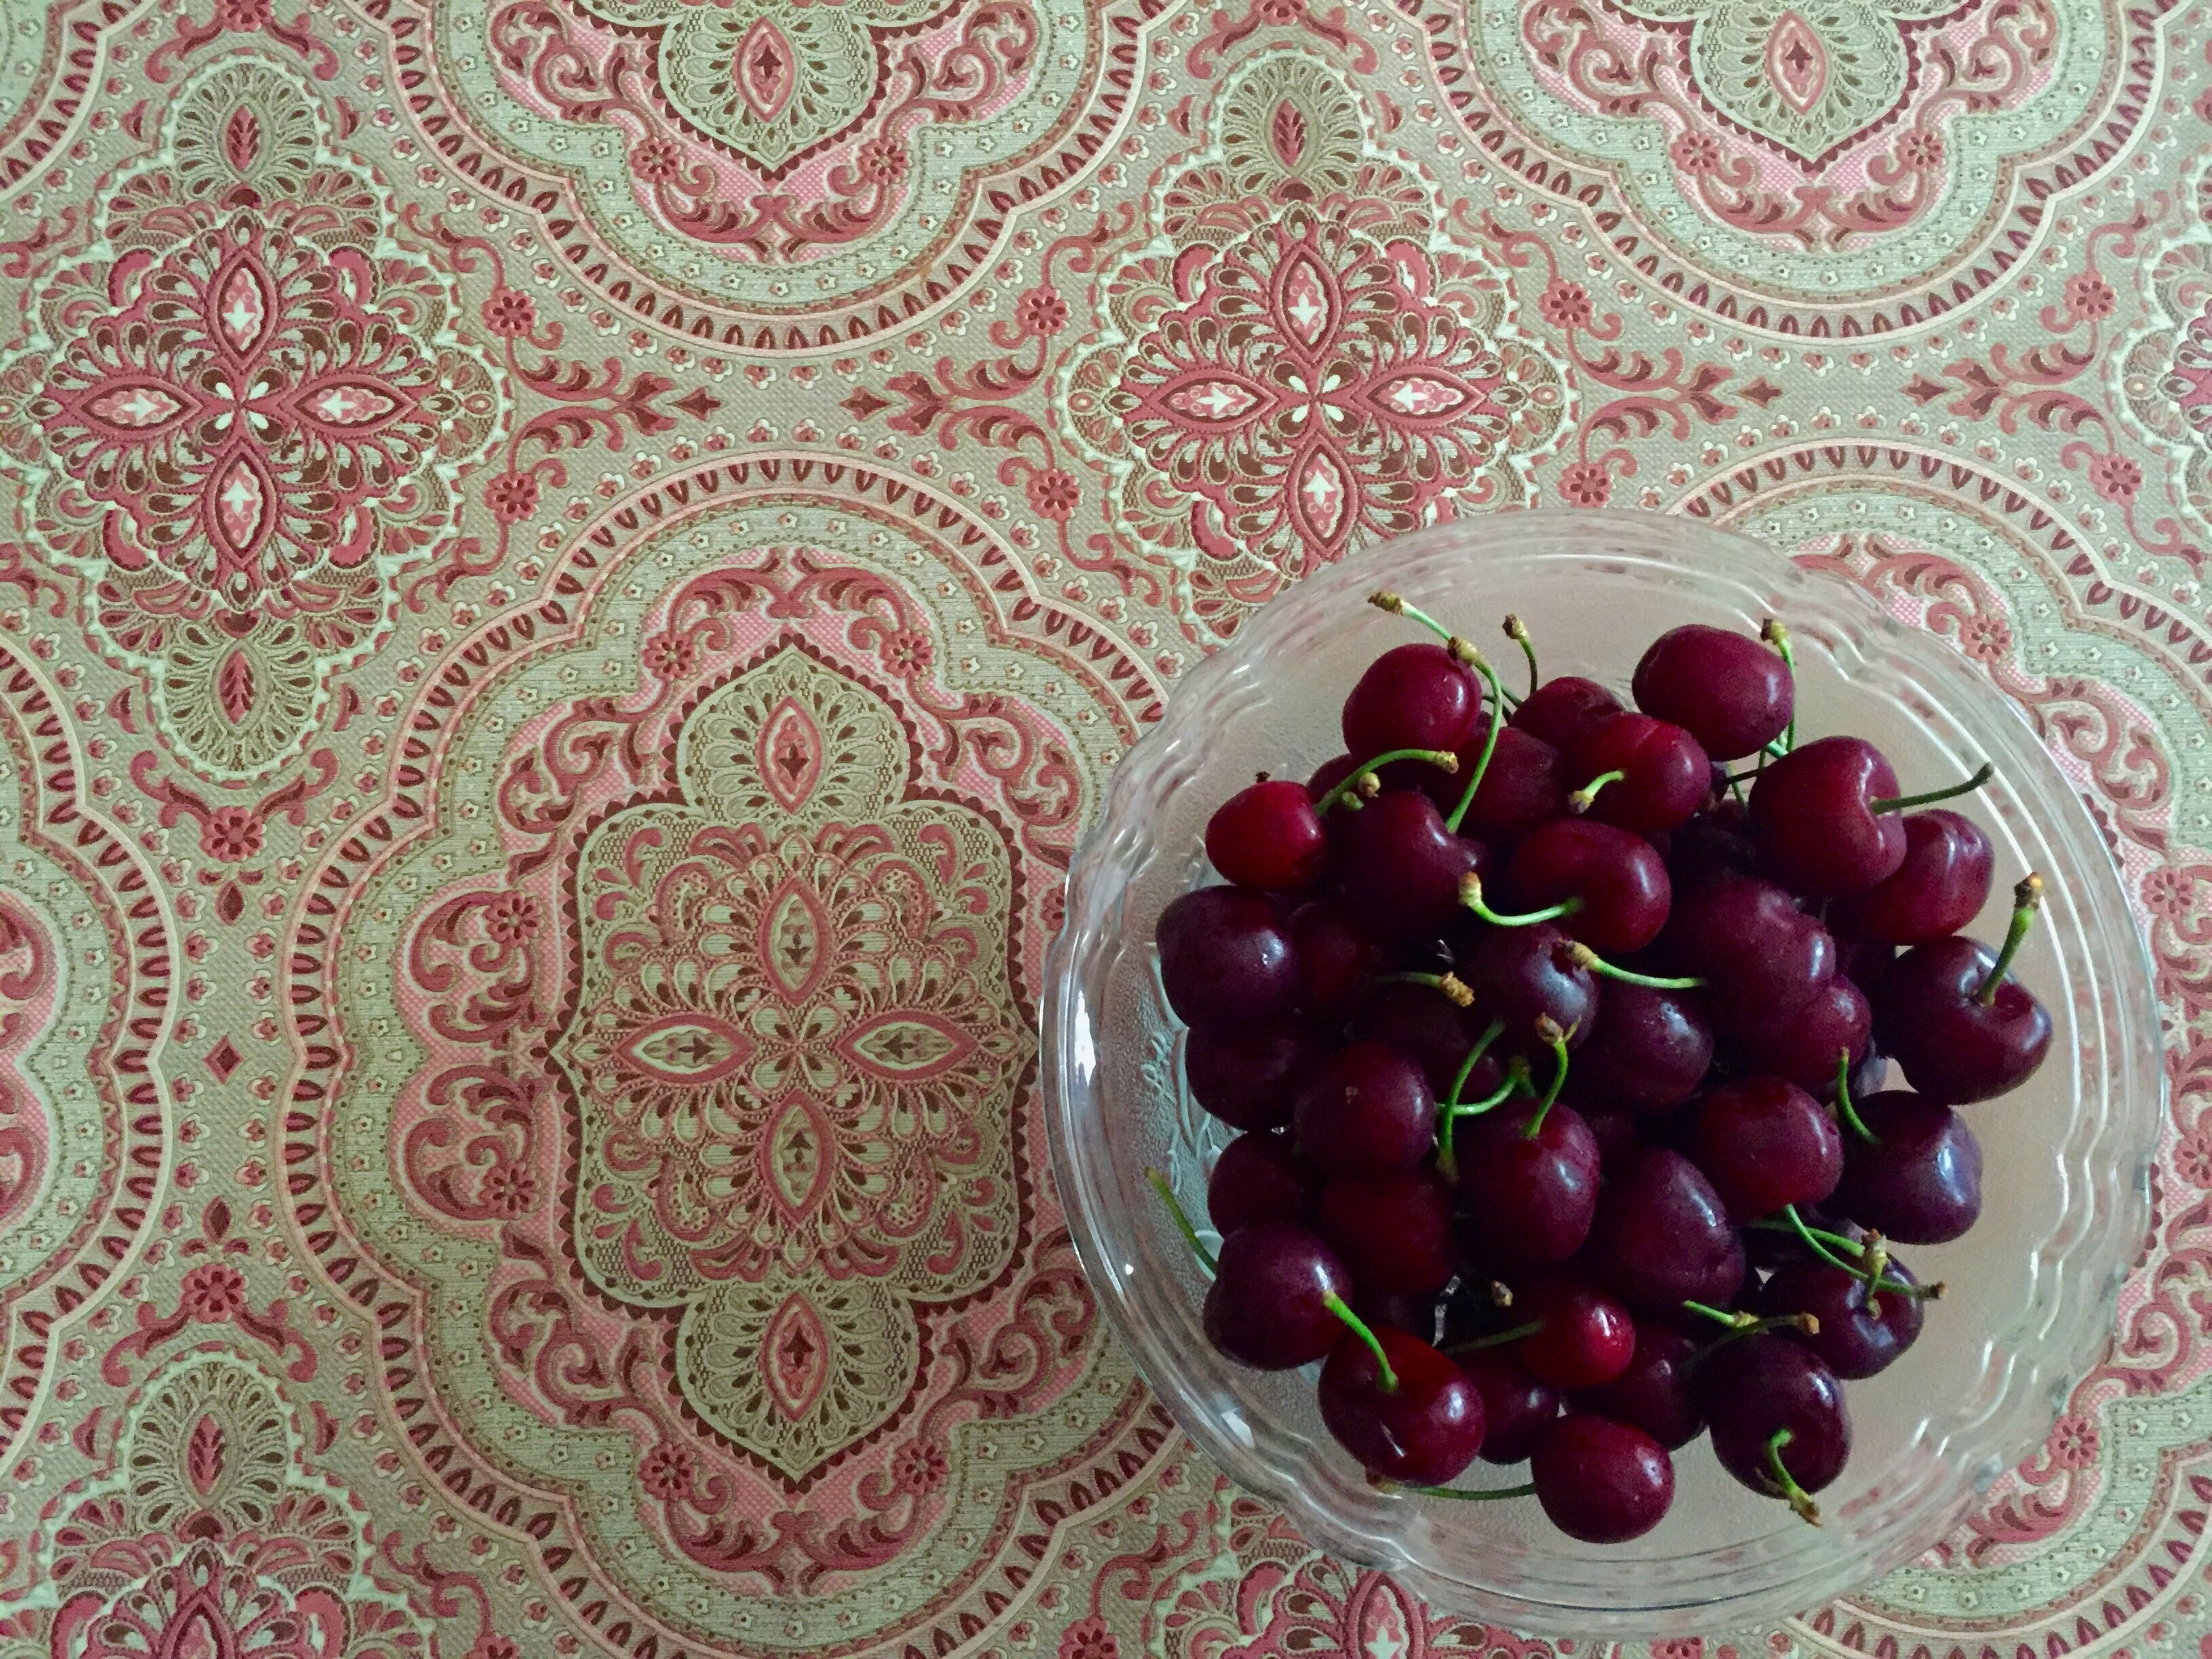 food and drink, food, indoors, fruit, freshness, healthy eating, still life, red, sweet food, raspberry, strawberry, blueberry, bowl, close-up, berry fruit, abundance, table, high angle view, directly above, ripe